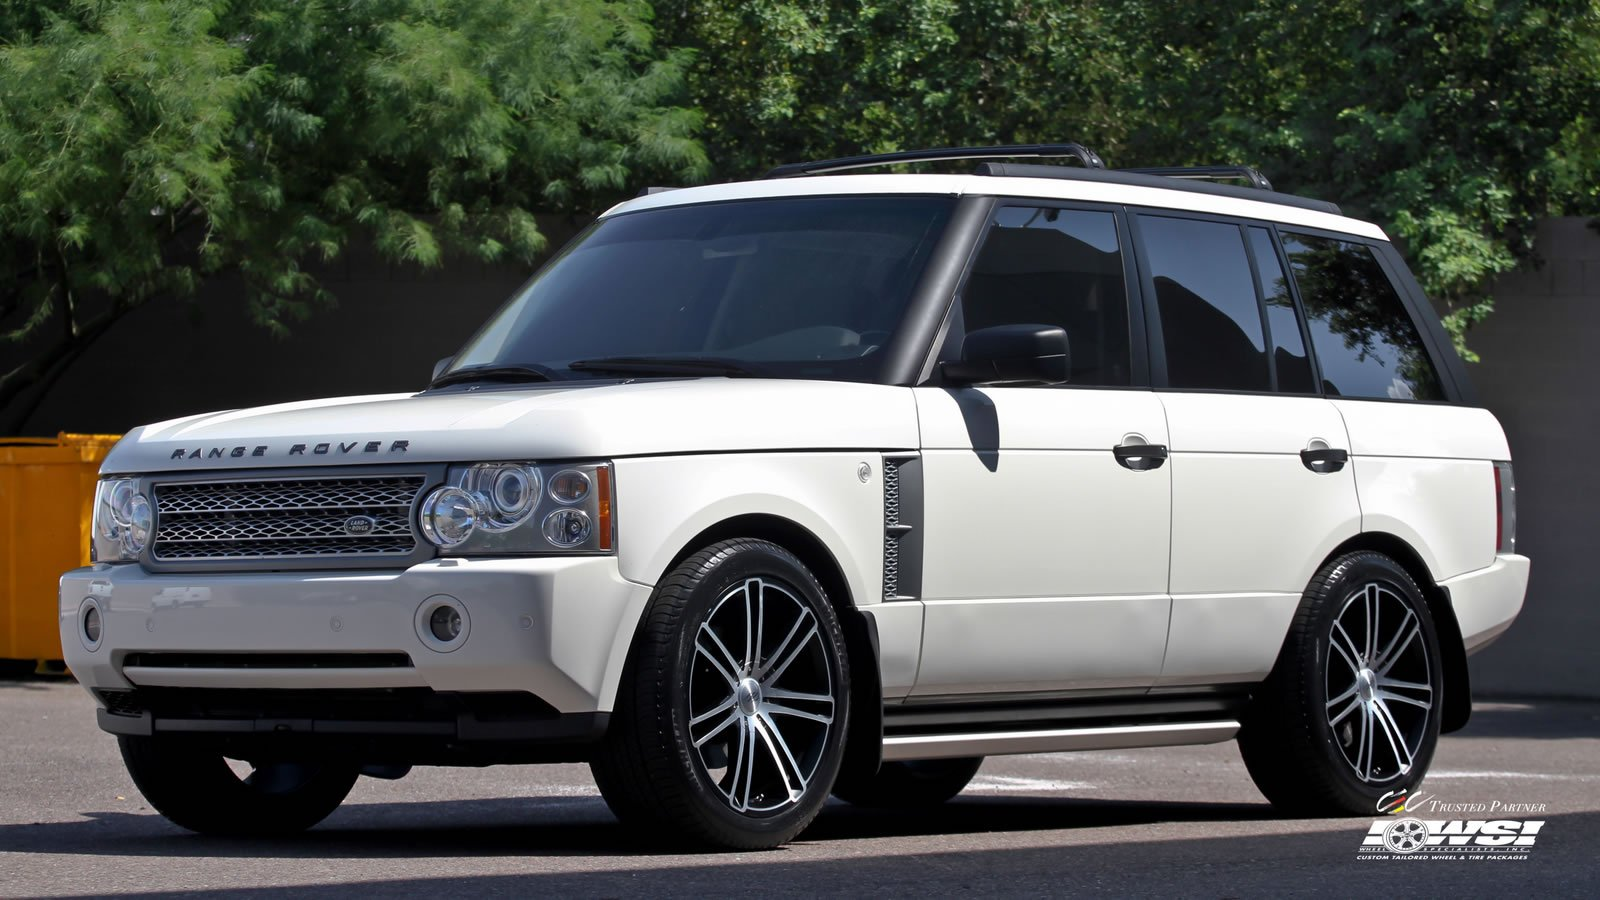 2015 cec wheels tuning cars suv range rover lr4 wallpaper 1600x900 618198 wallpaperup. Black Bedroom Furniture Sets. Home Design Ideas